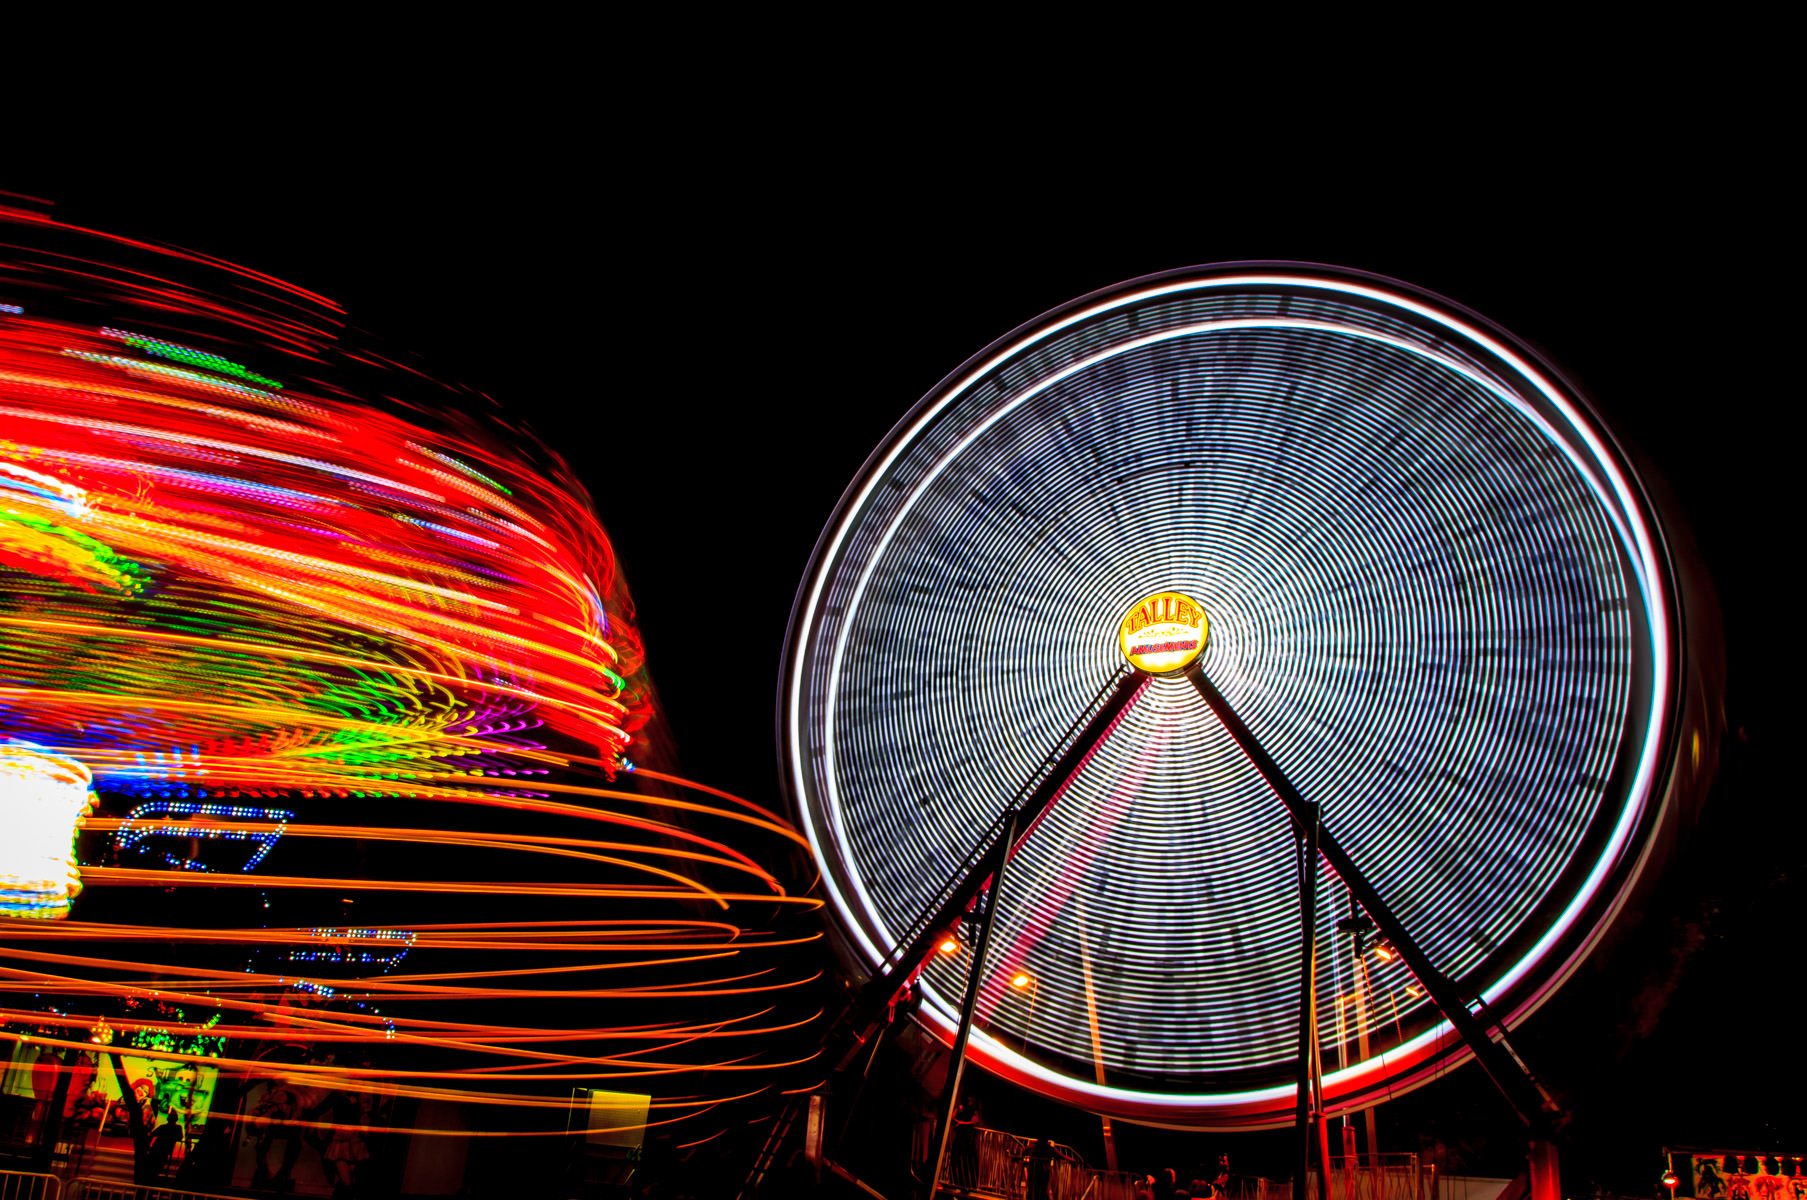 A long exposure of carnival rides at Addison Oktoberfest, Addison, Texas.